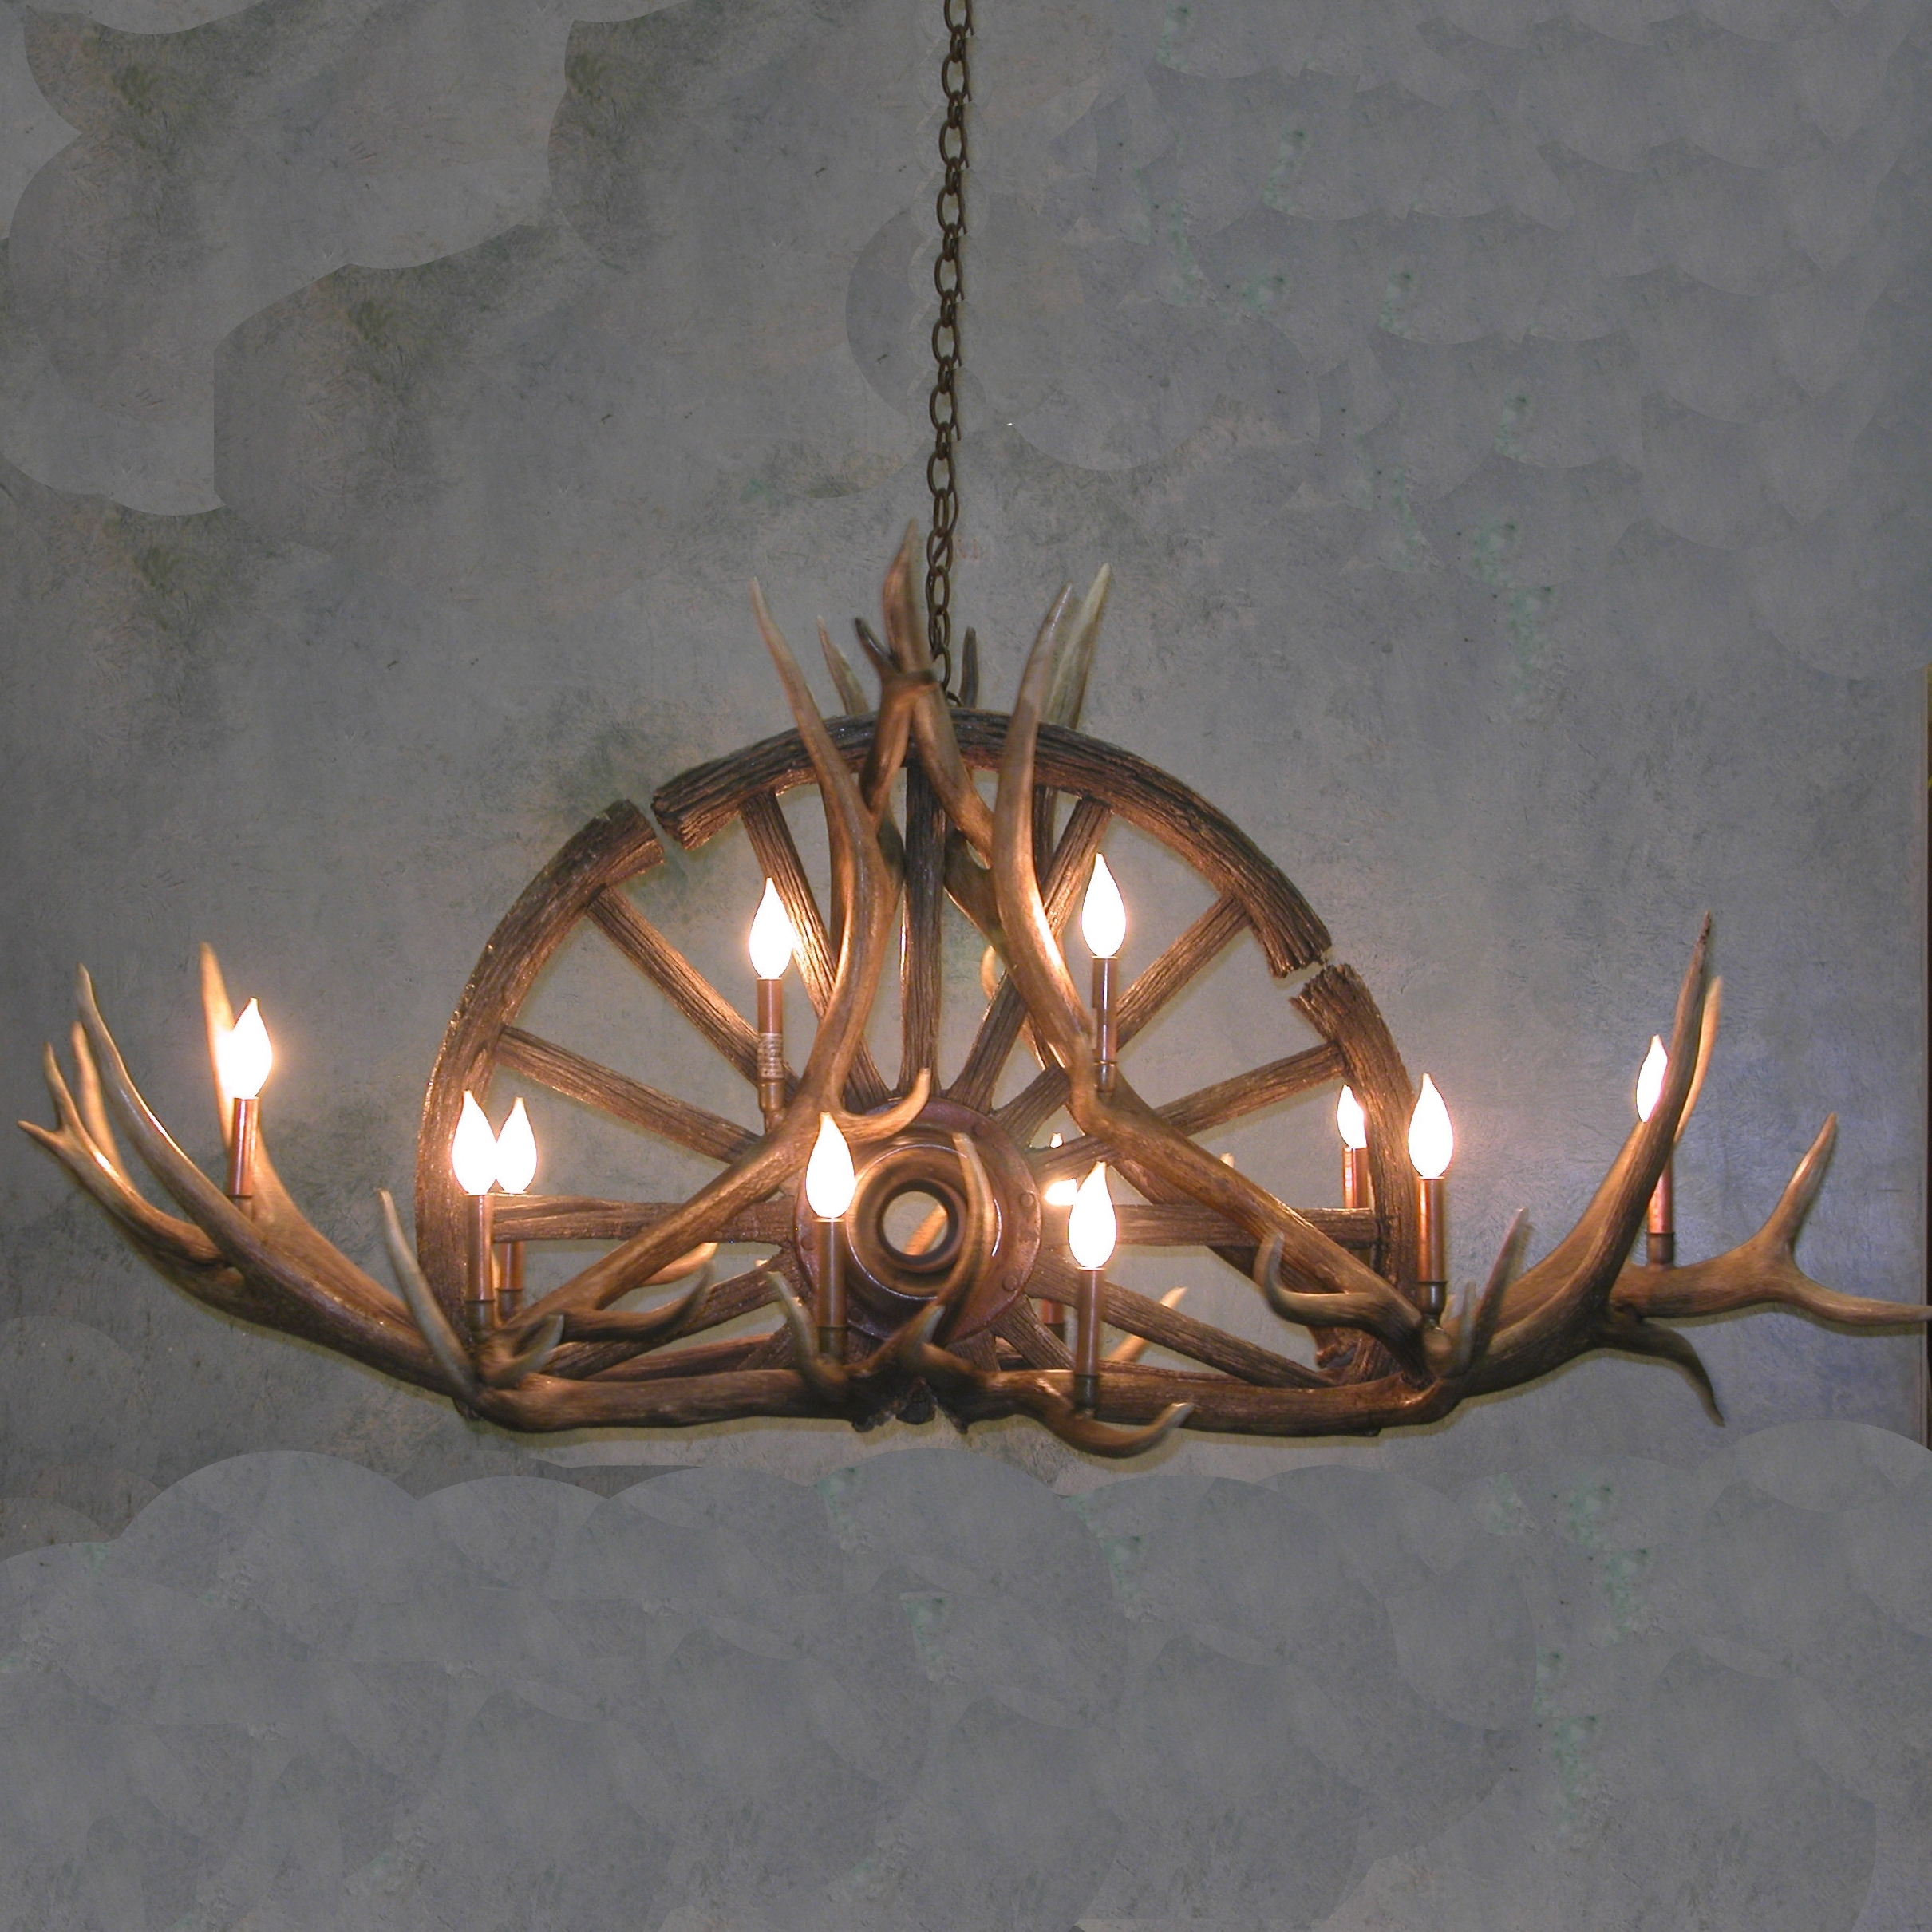 Antler Chandeliers With Regard To Widely Used Wagon Wheel Antler Chandelier (View 5 of 15)